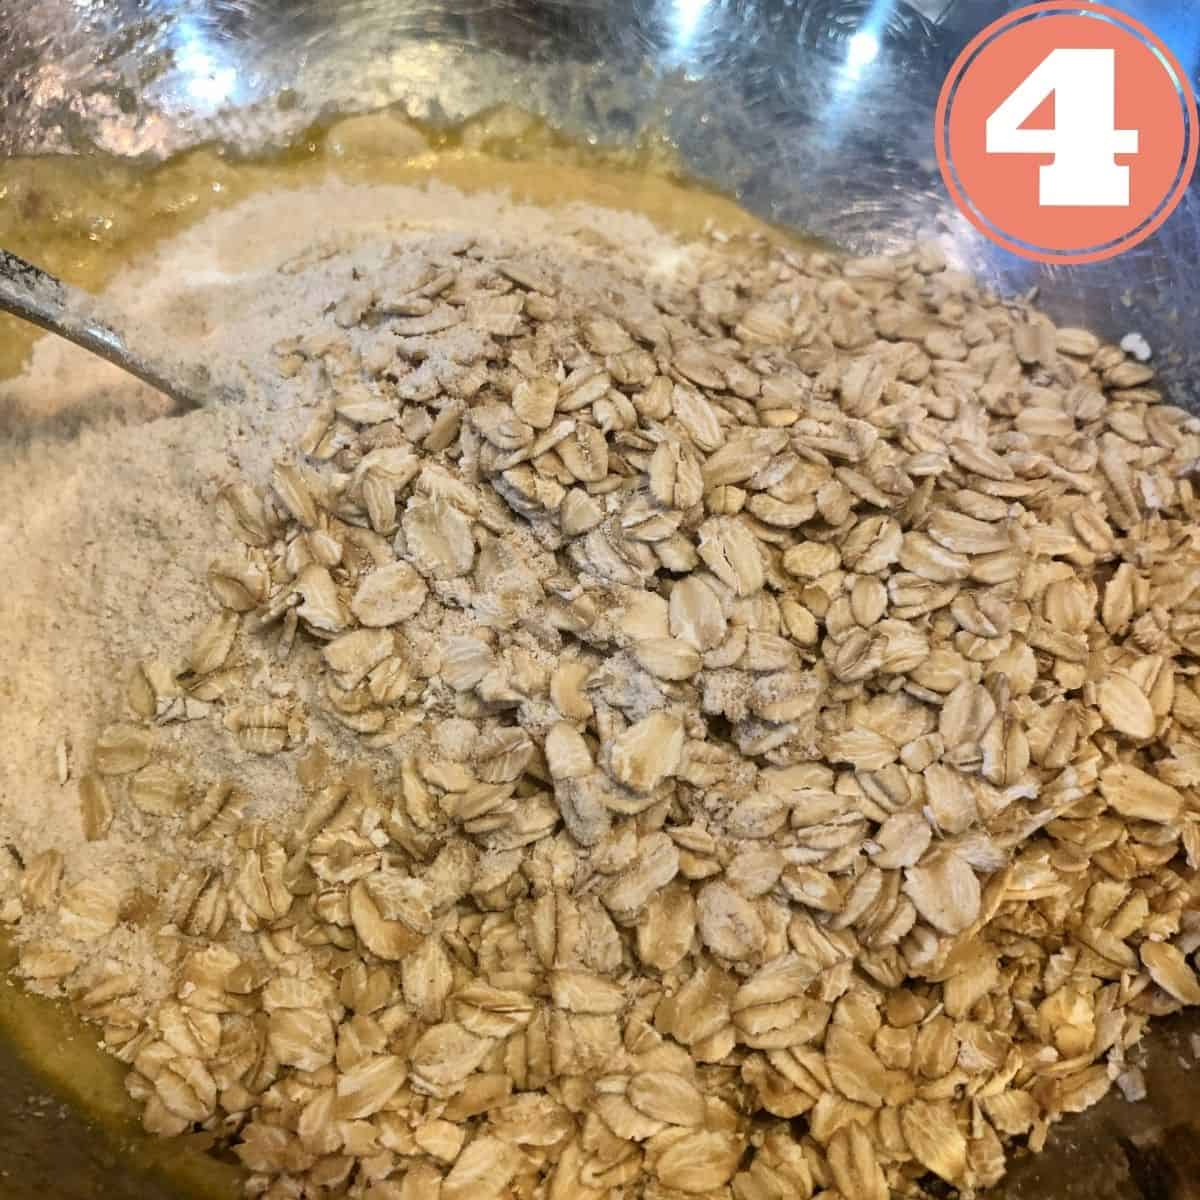 Kodiak Cakes Mix and Rolled Oats in a bowl being mixed with a spoon in a stainless steel mixing bowl